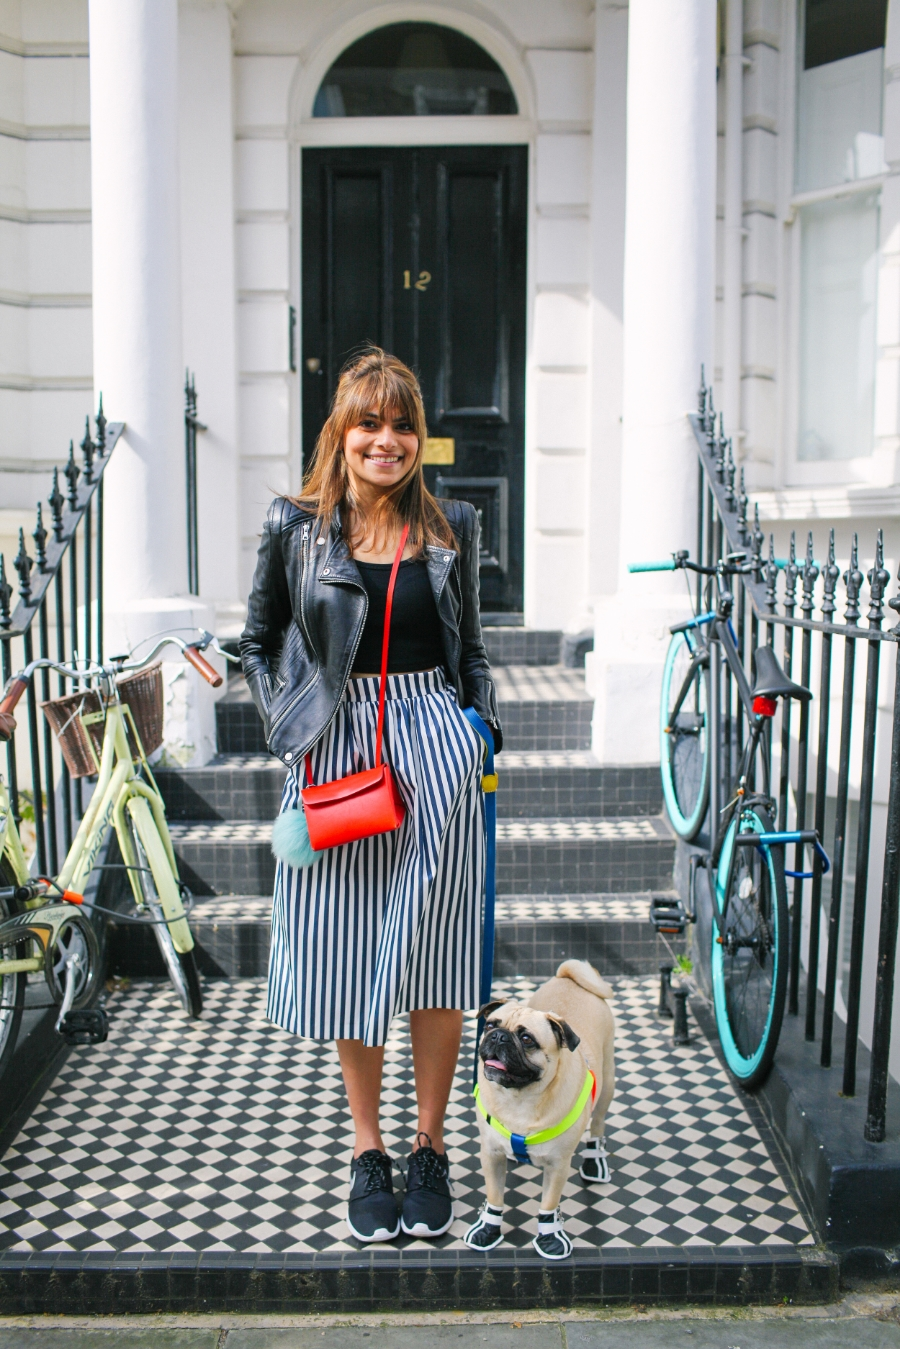 honeyifdressedthepug-uk-london-nottinghill-red-pug-puglife-pugswag-dog-pet-doggyshoes-stripes-midi-skirt-zara-pompom-squishyface-arithepug-puppy-coolpups-trendy-chic-sneakers-nike-door-colours-fashion-streetstyle-bike-harness-leadthewalk-bikerkacket